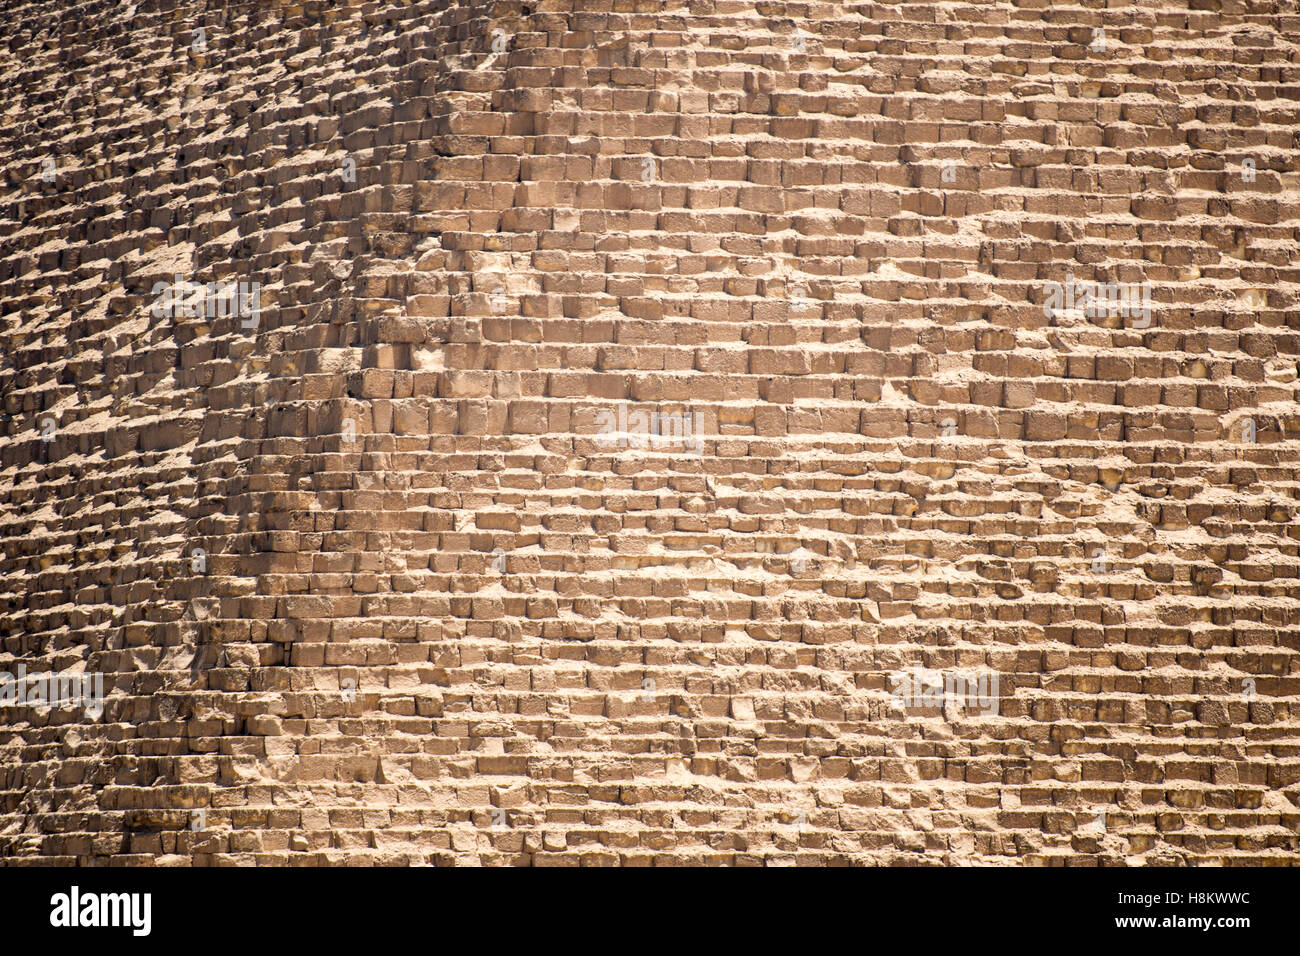 Cairo, Egypt. Close up view of the casing stones (limestone) that make up The Great Pyramids of Giza. - Stock Image